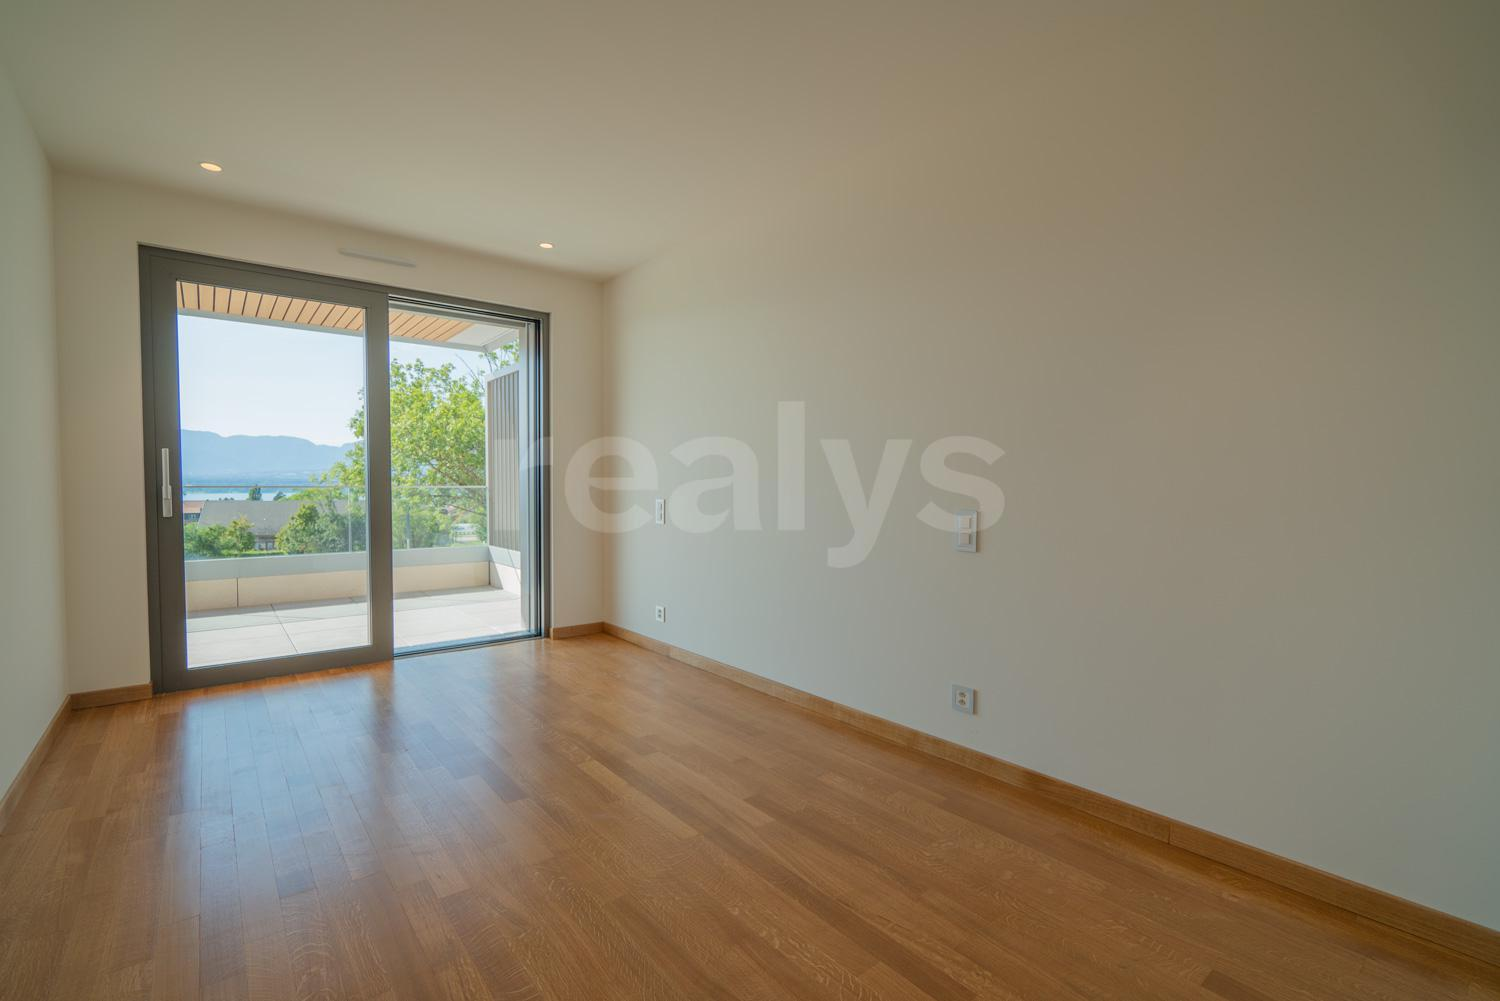 Privalia4 room flat in a new high-end residence